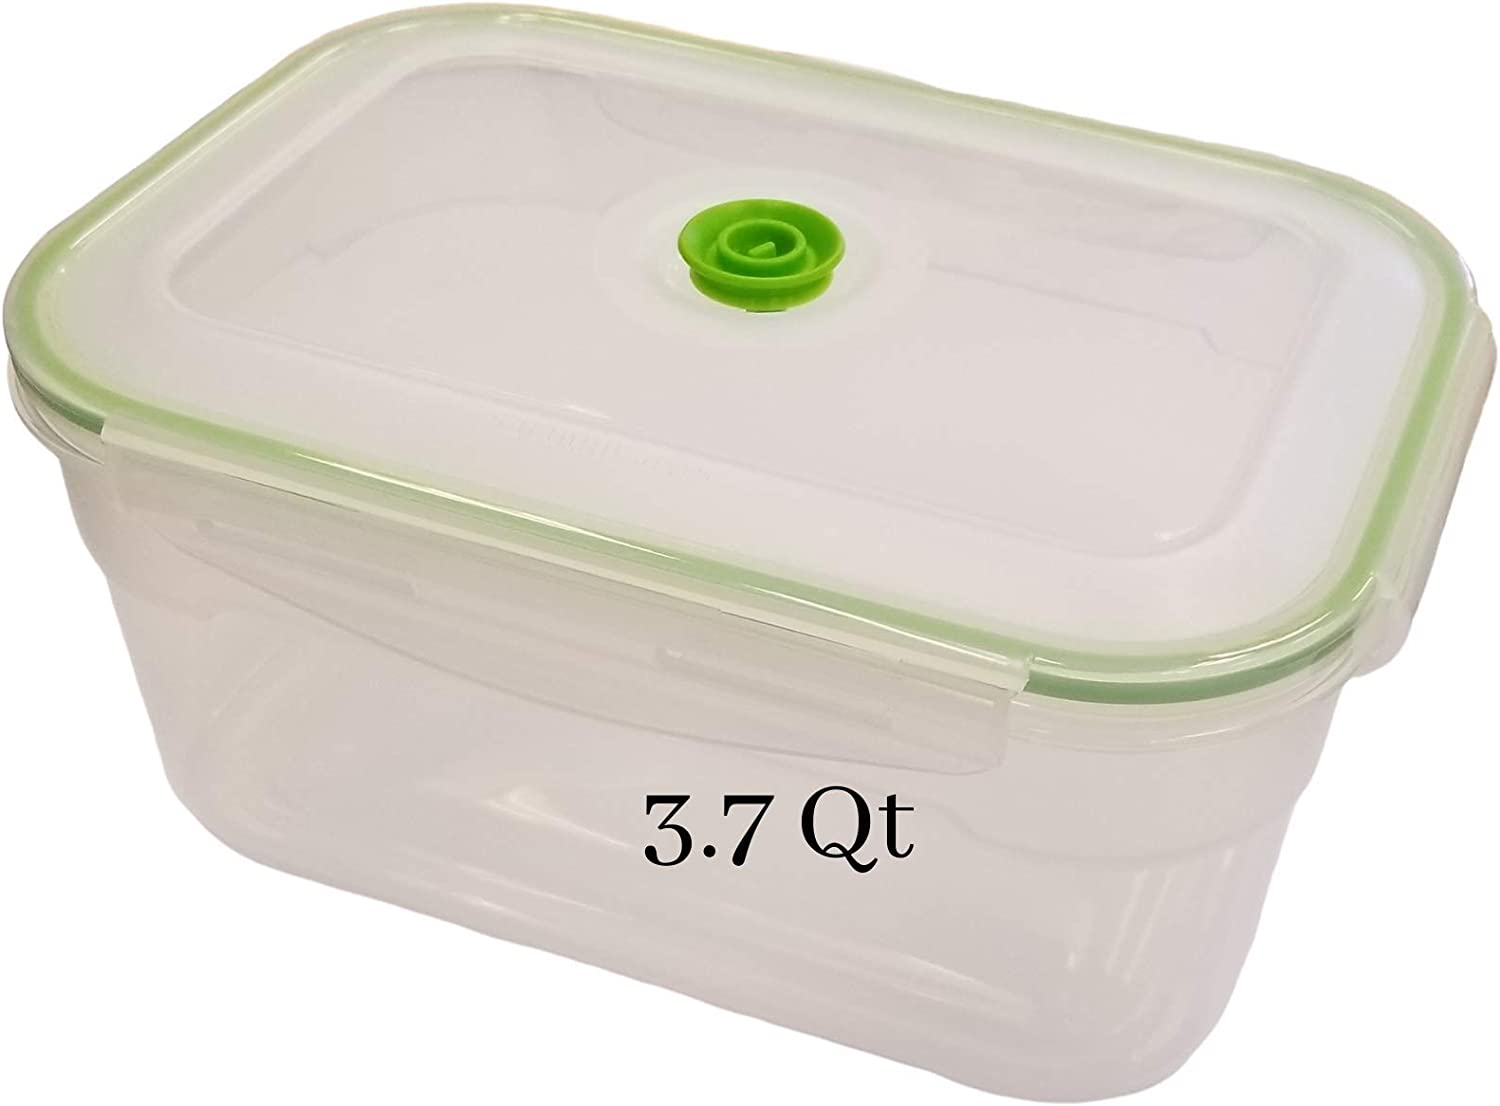 Lasting Freshness Vacuum Seal Food Storage Containers - Handheld Vacuum Food System - Quick Marinator - Rectangle - 3.5 Liter / 3.7 Qt / 0.9 Gallon - Coral Color